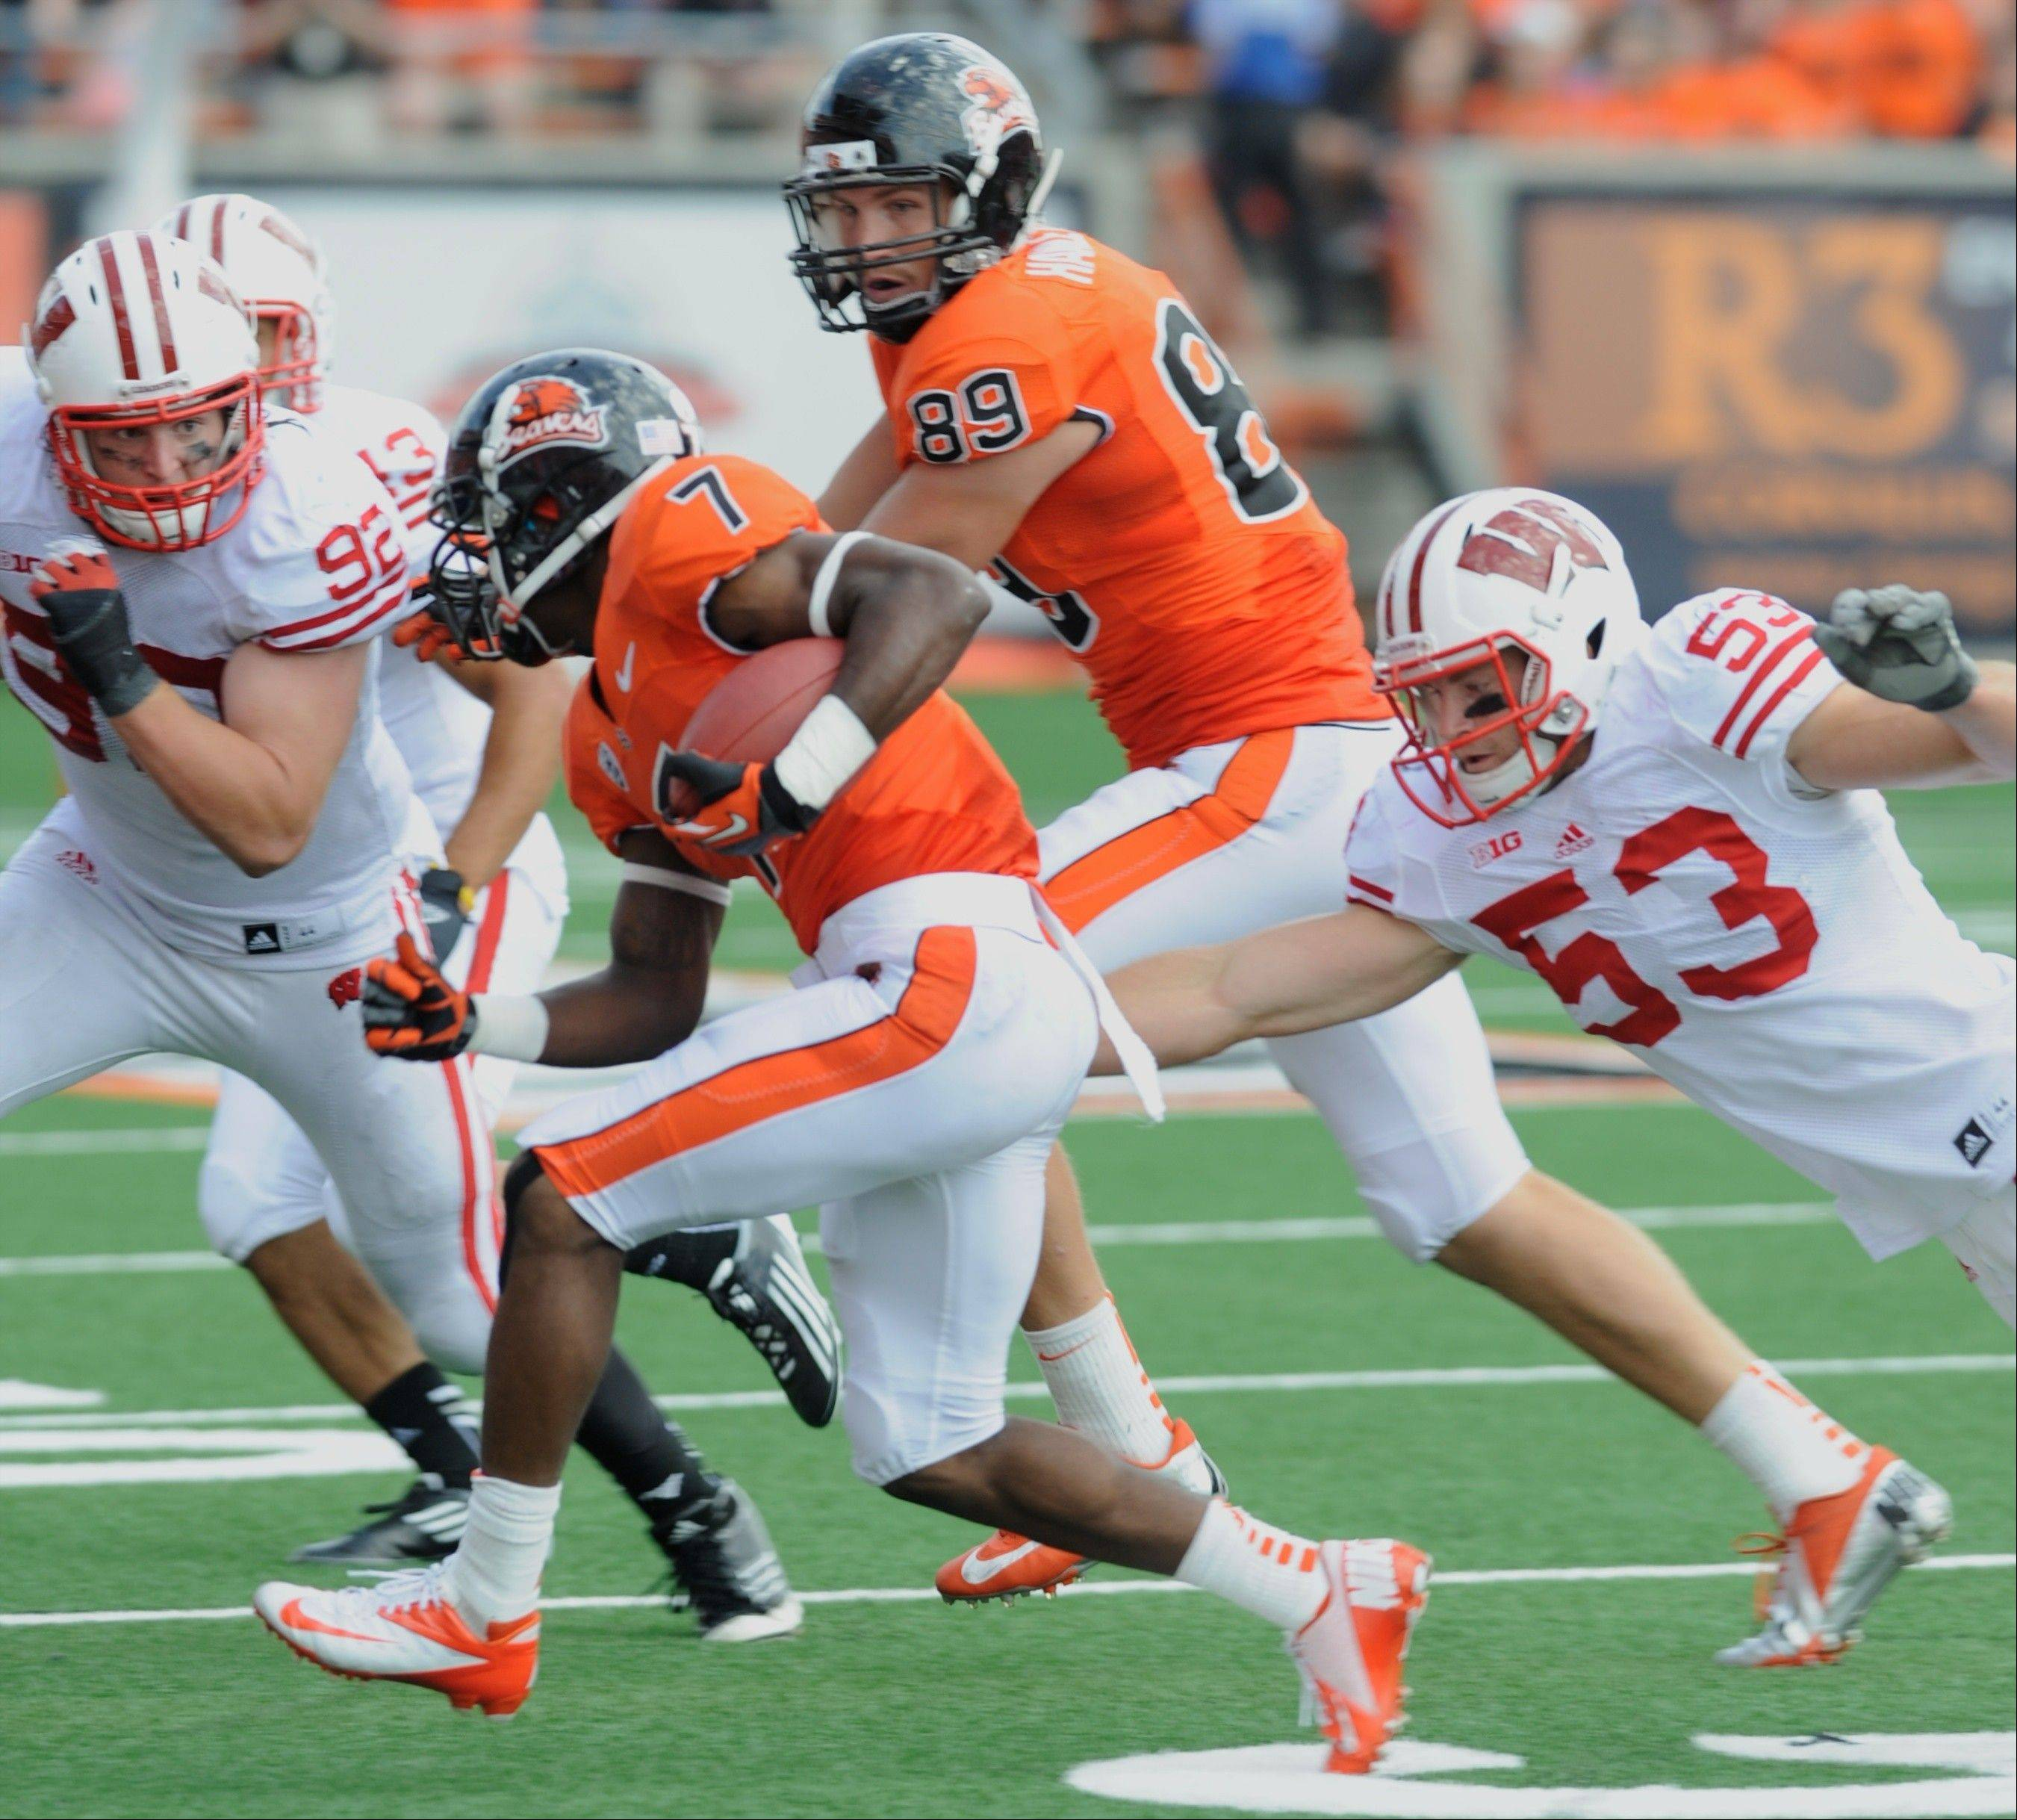 Oregon State's Brandin Cooks (7) runs against Wisconsin's Mike Taylor (53) and Pat Muldoon (92) Saturday during the second half. The Big Ten went 6-6 last week, with Wisconsin and Nebraska both losing to Pac-12 teams.